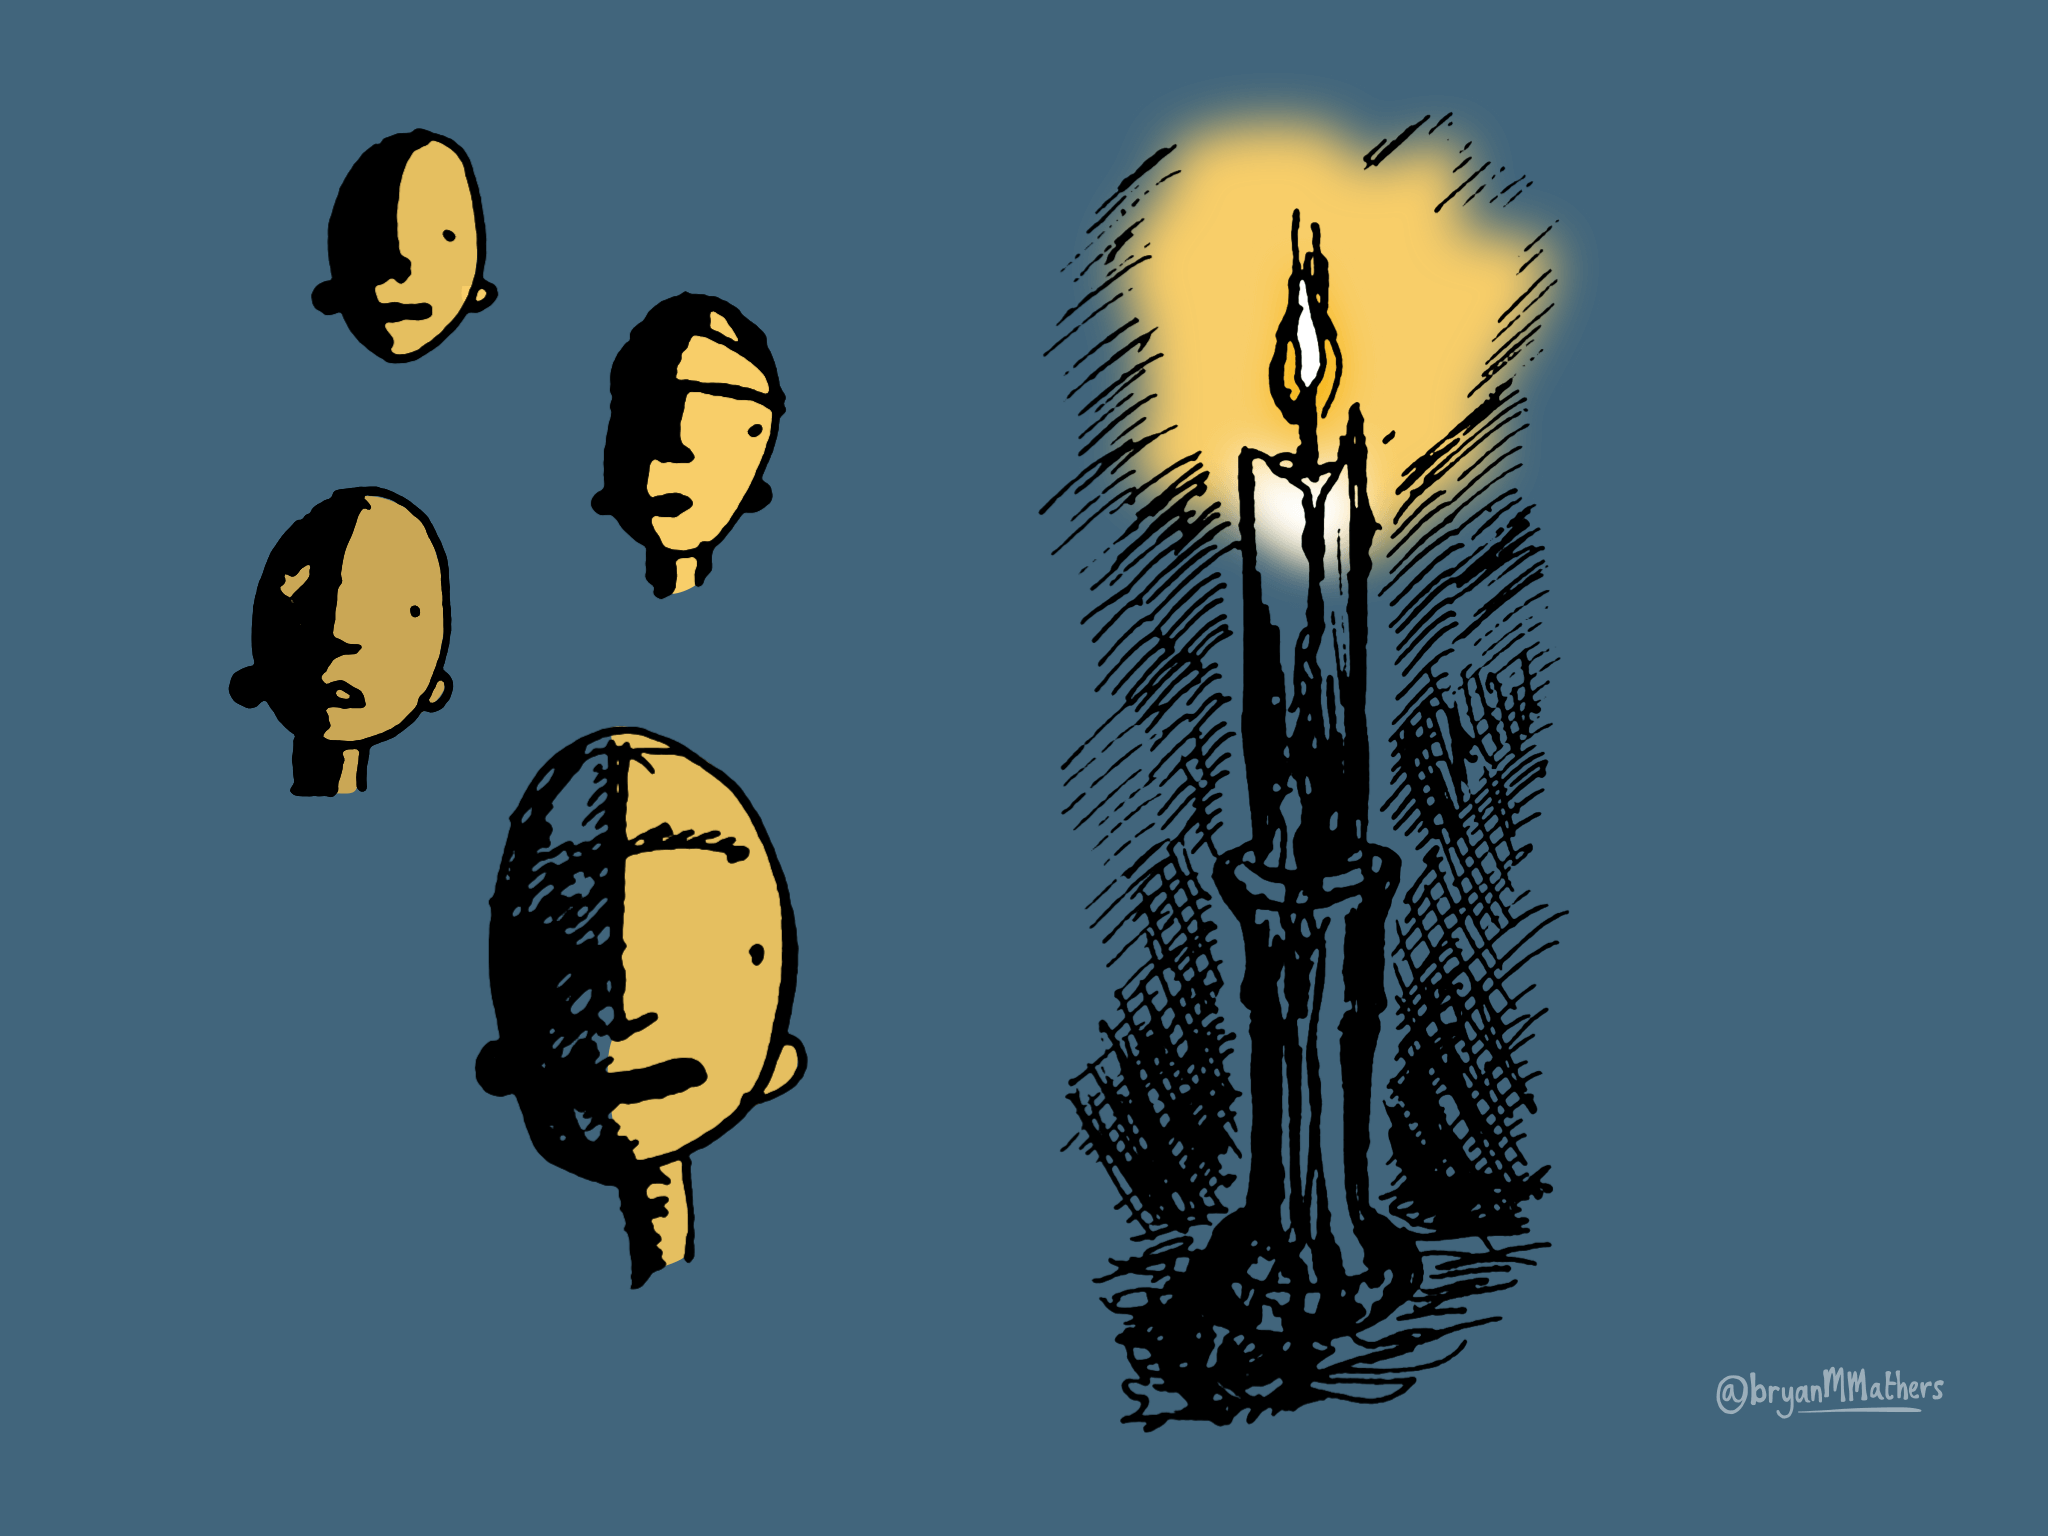 Thinking by candlelight